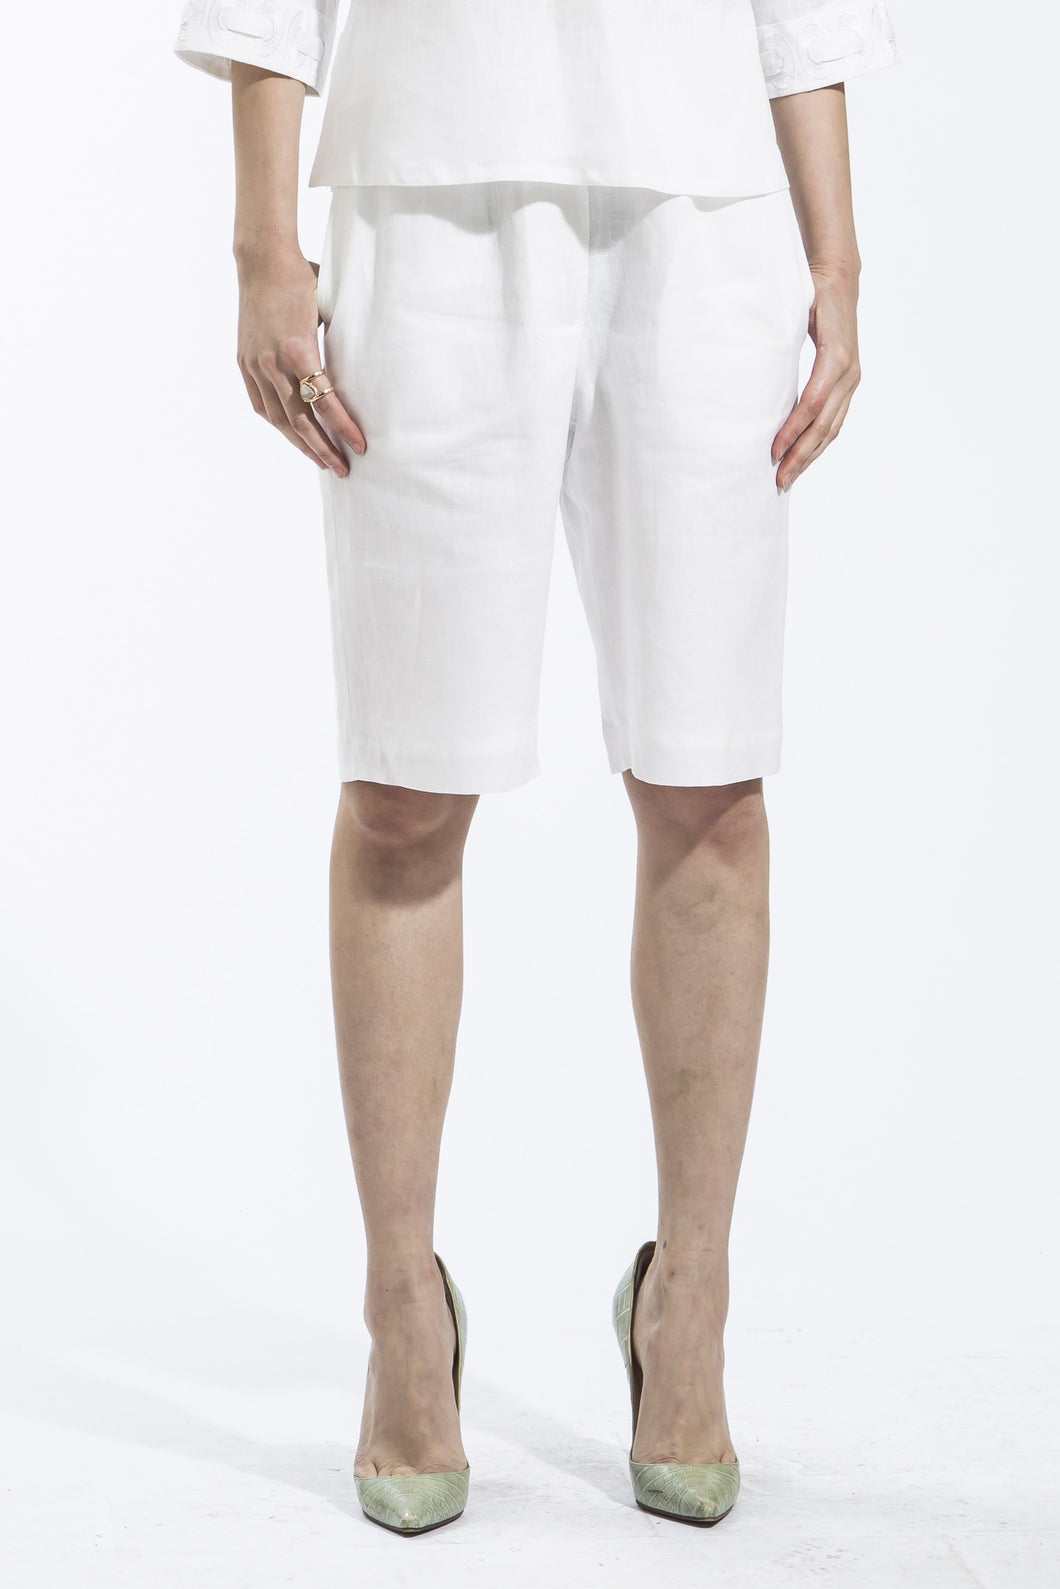 Ribbon Threaded White Shorts Style 1816